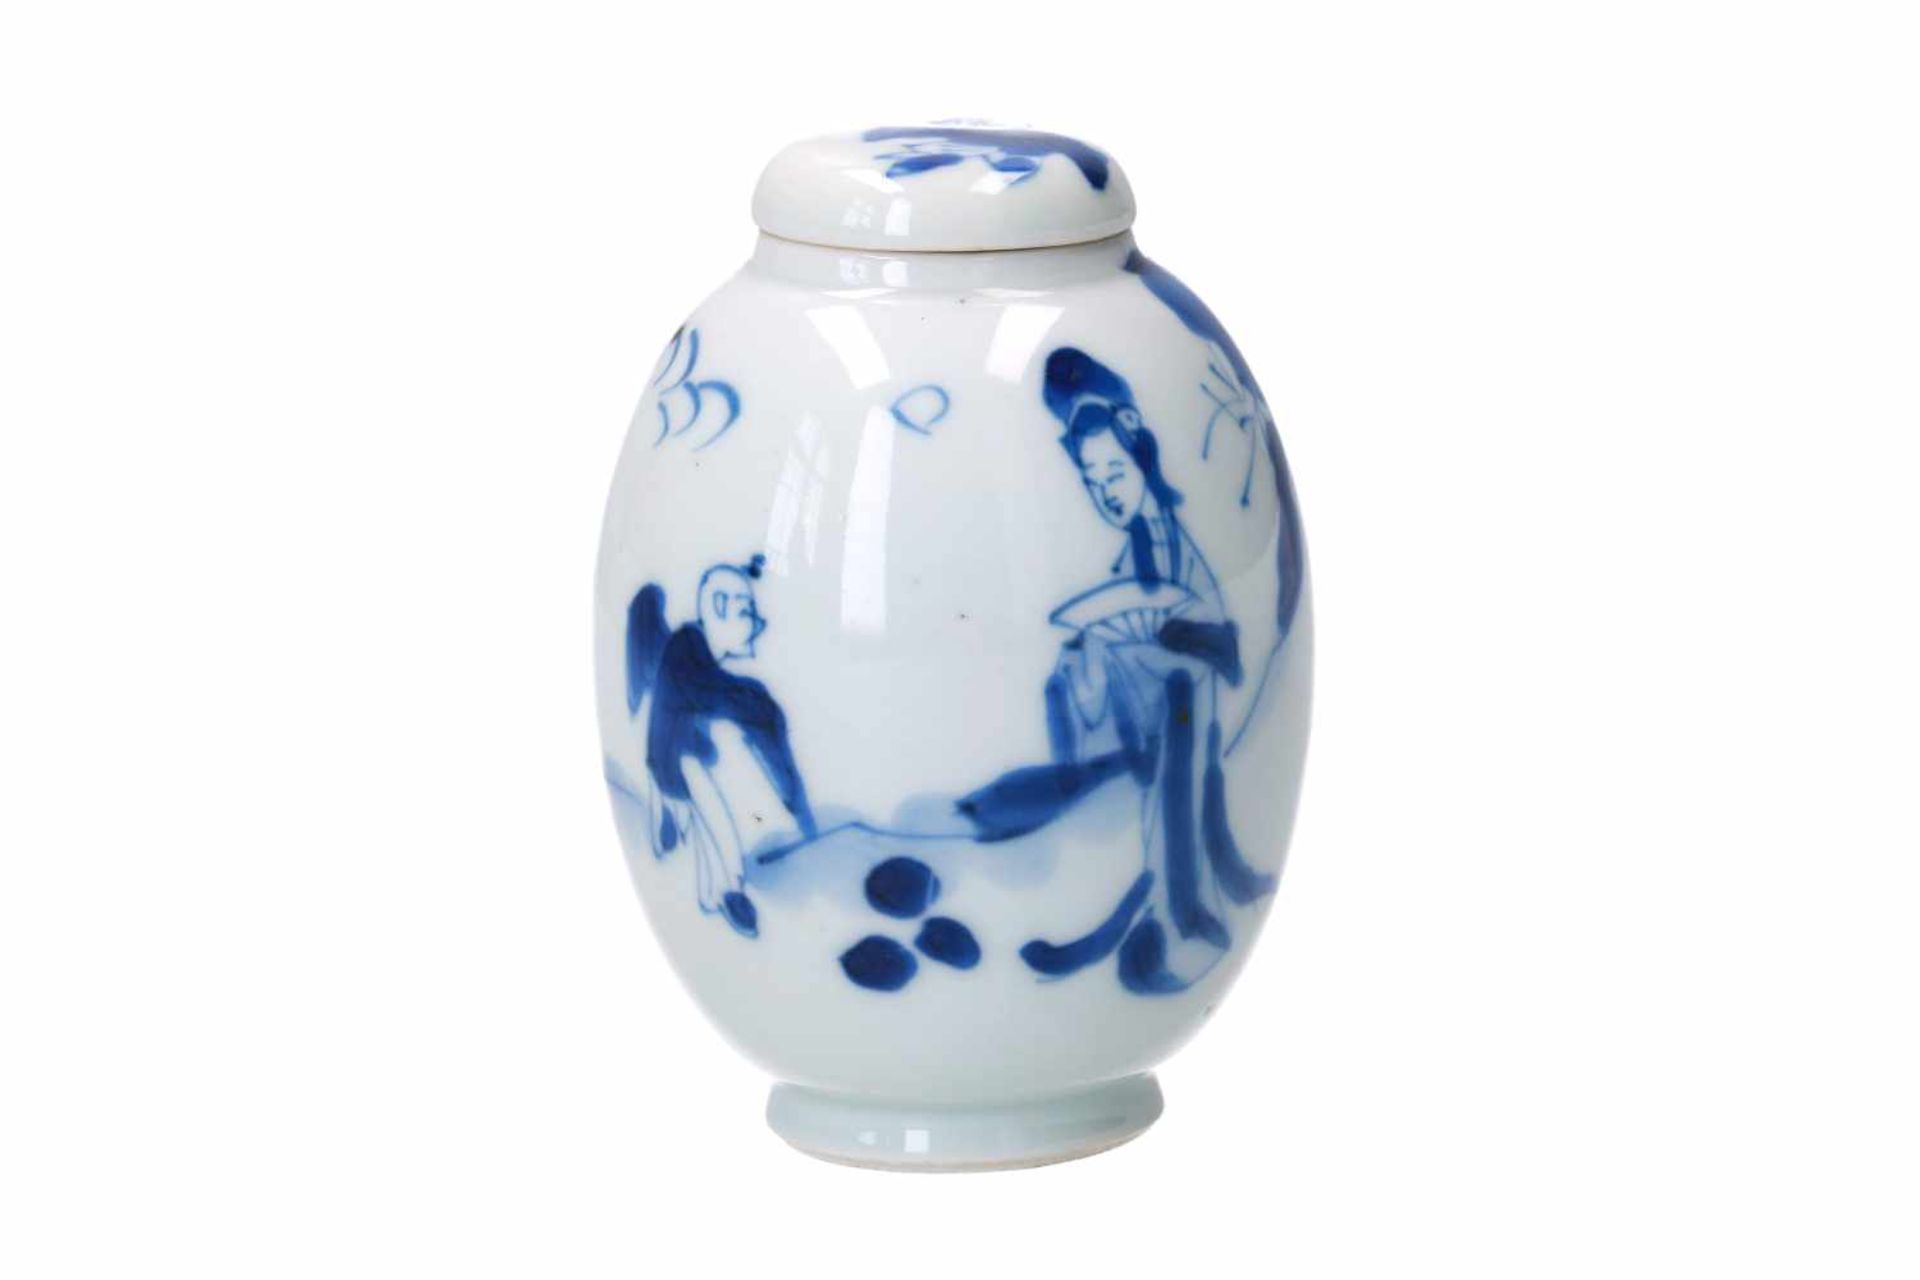 A blue and white porcelain lidded jar, decorated with a little boy and long Eliza in a landscape.